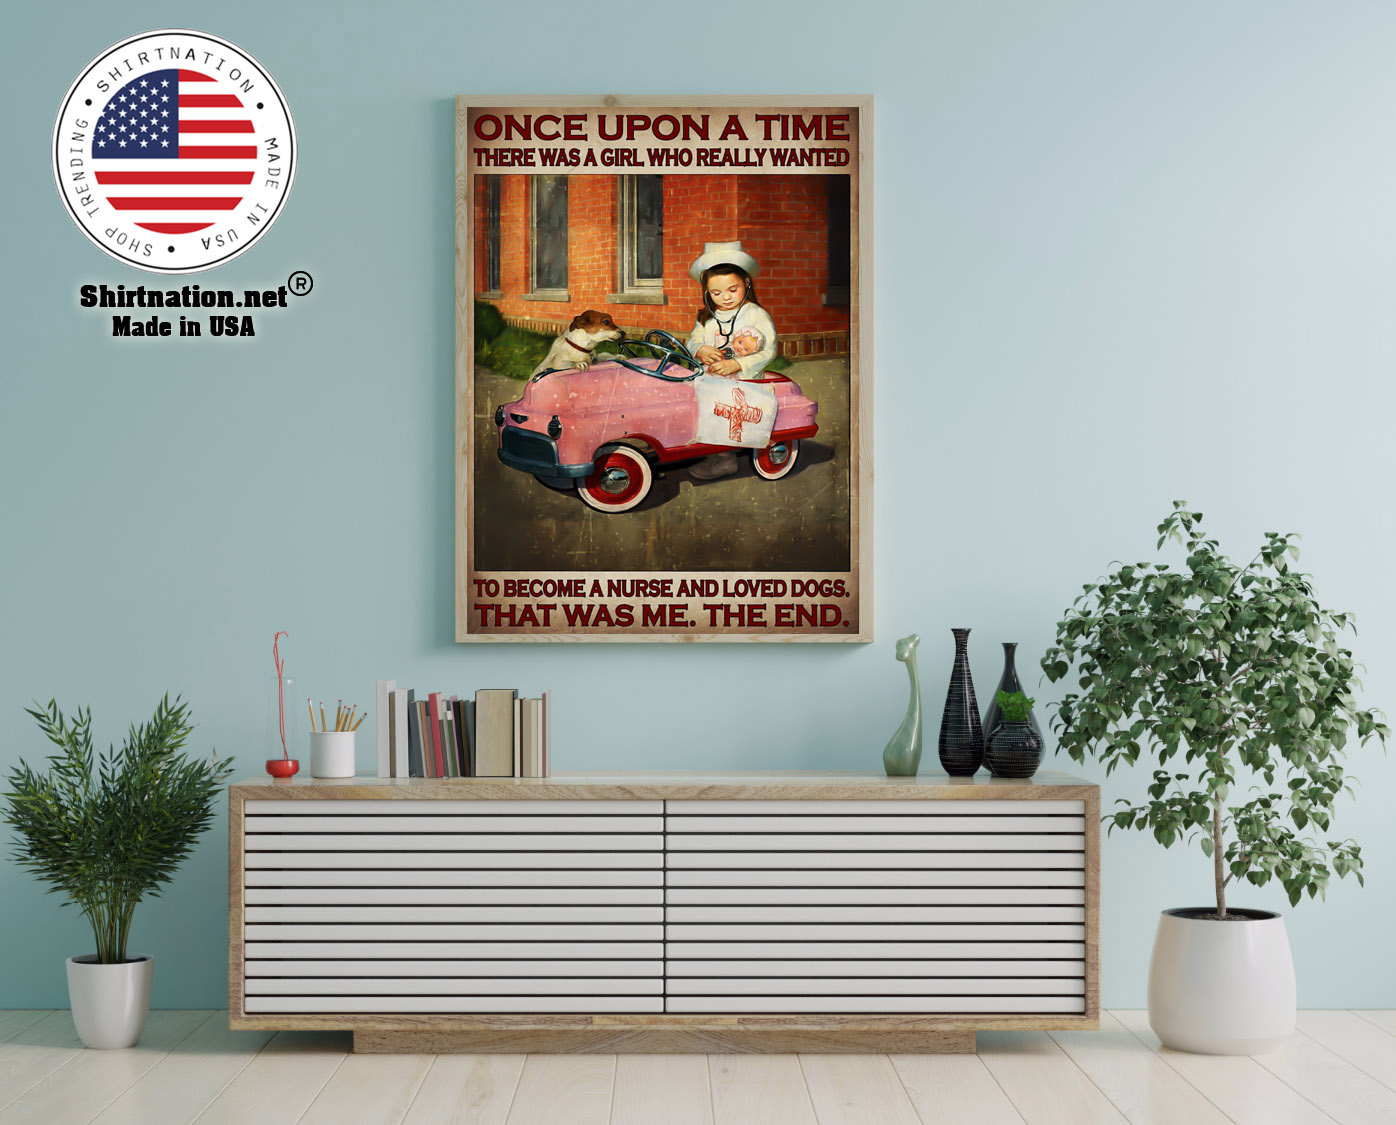 Once upon a time there was a girl who really wanted to become a nurse and loved dogs poster 12